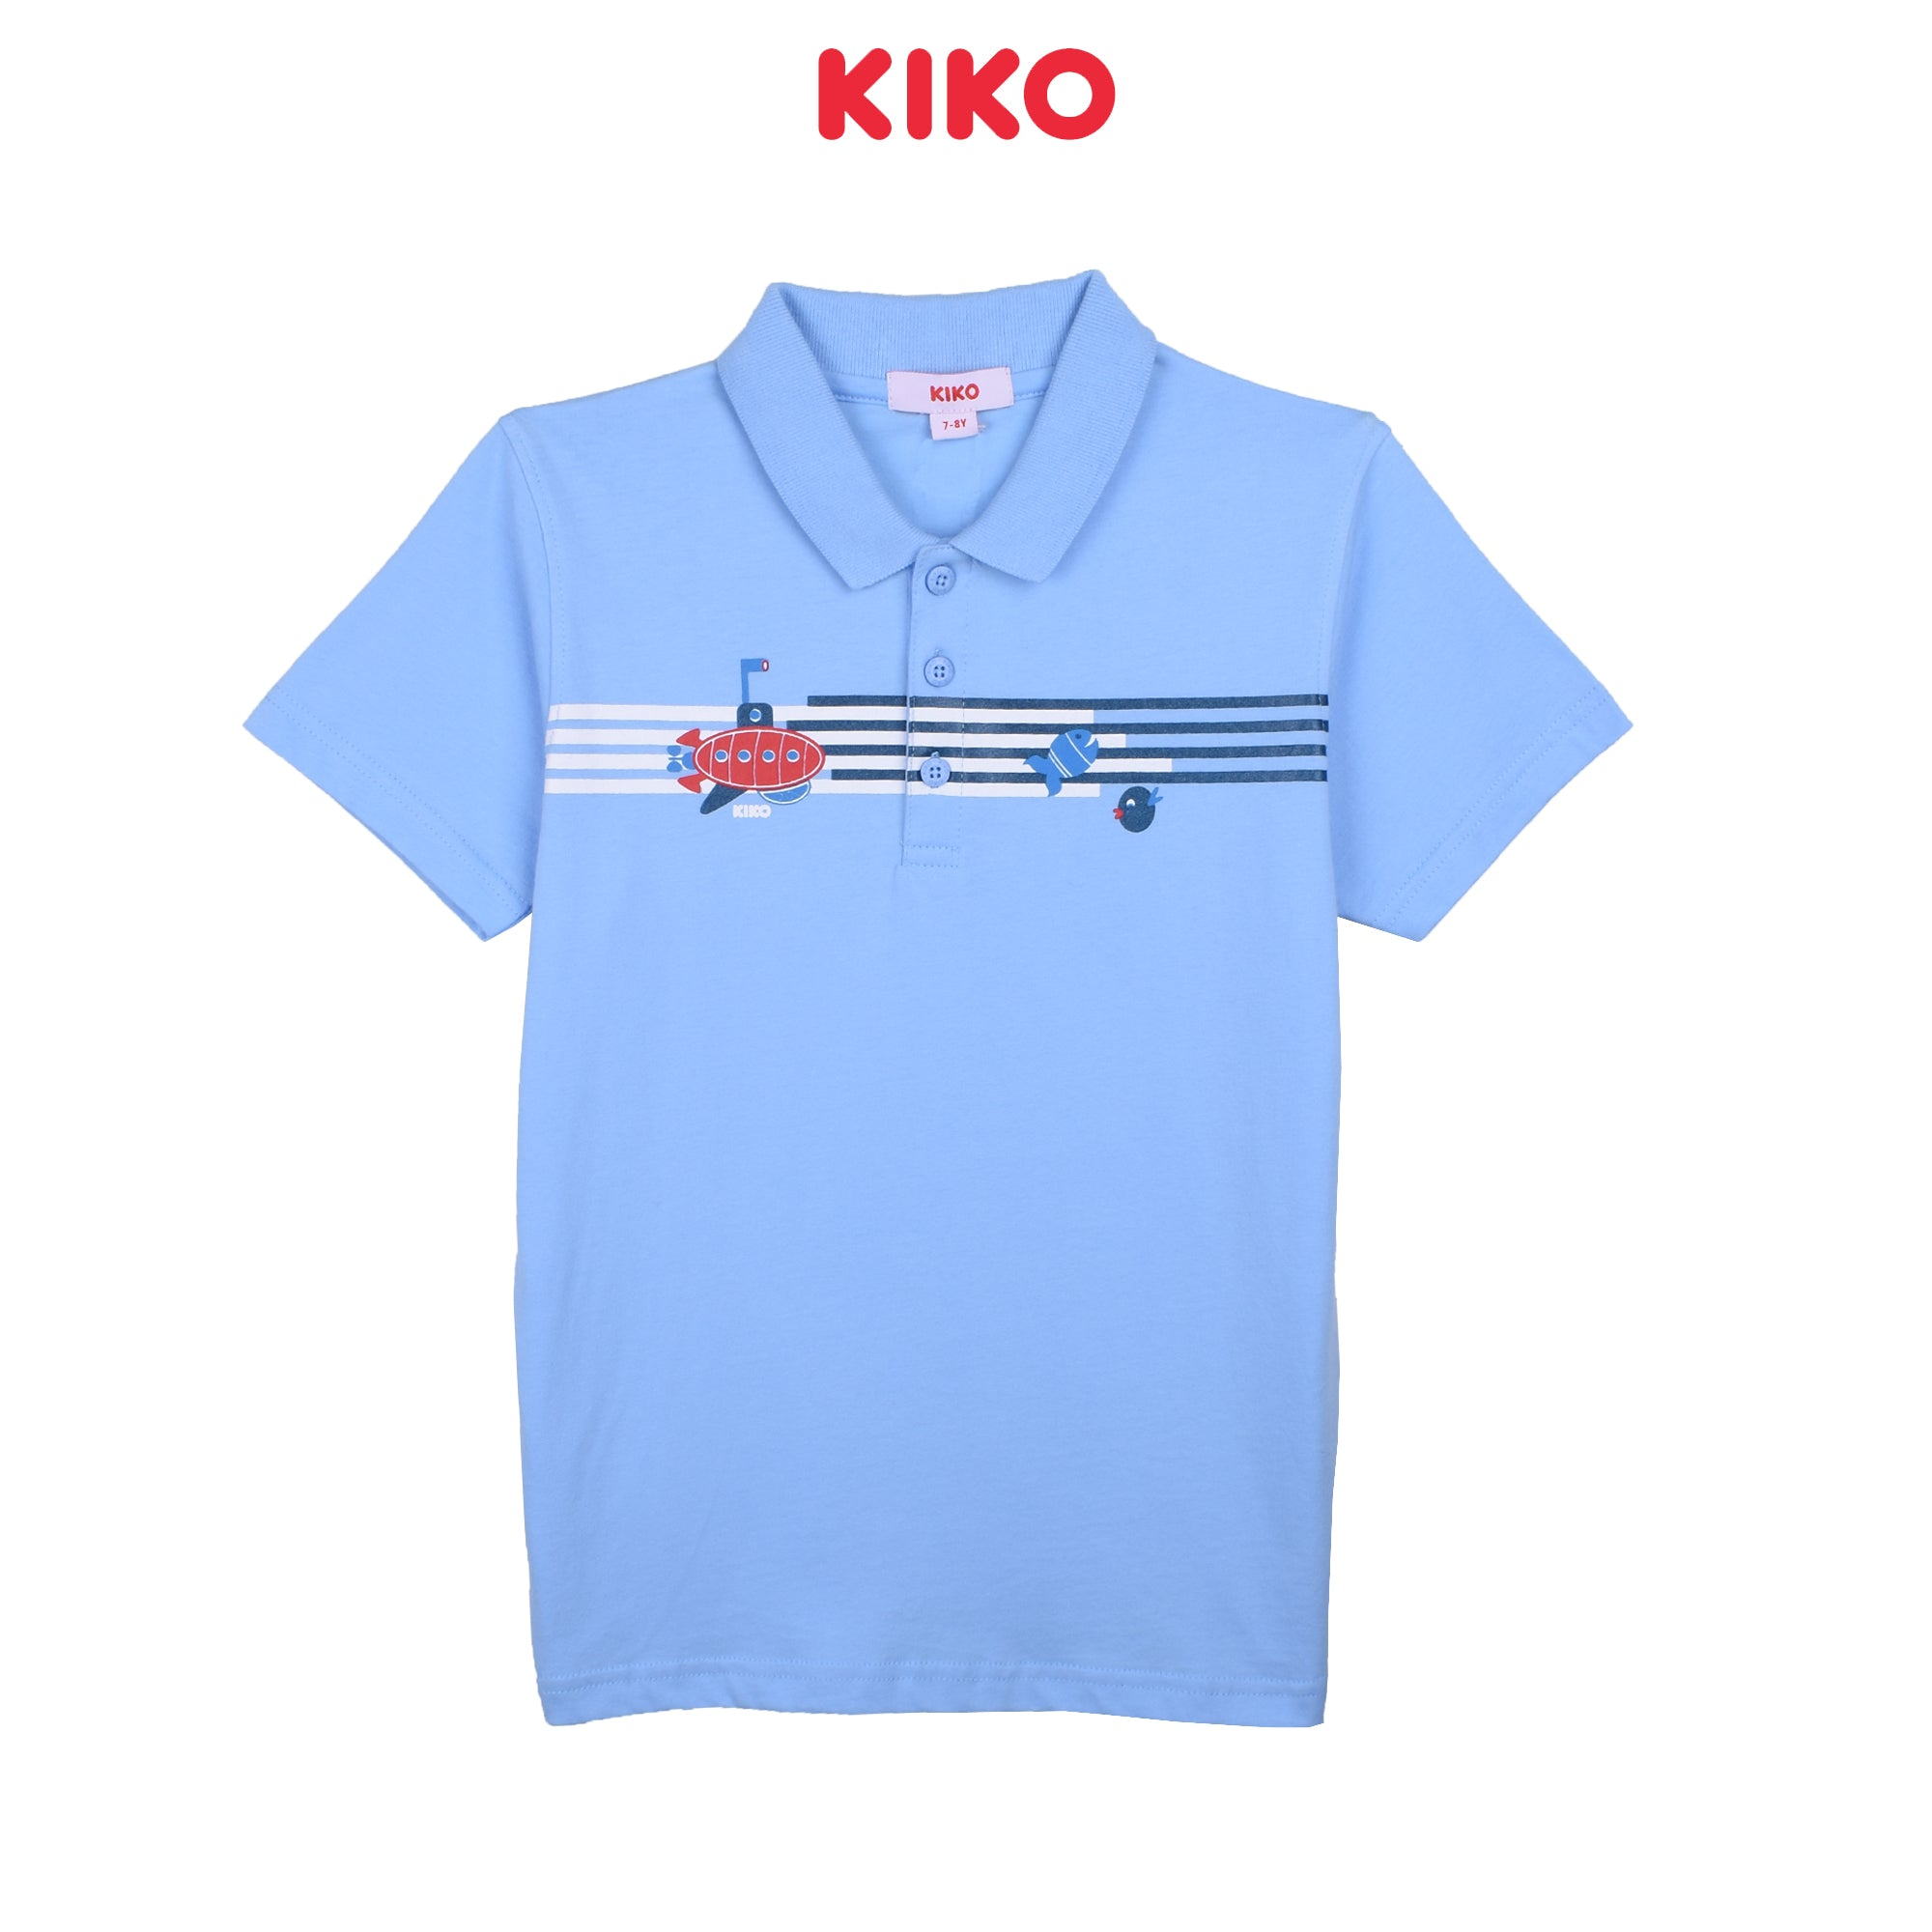 KIKO BOY BASIC SHORT SLEEVE COLLAR TEE - BLUE K922103-1296-L5